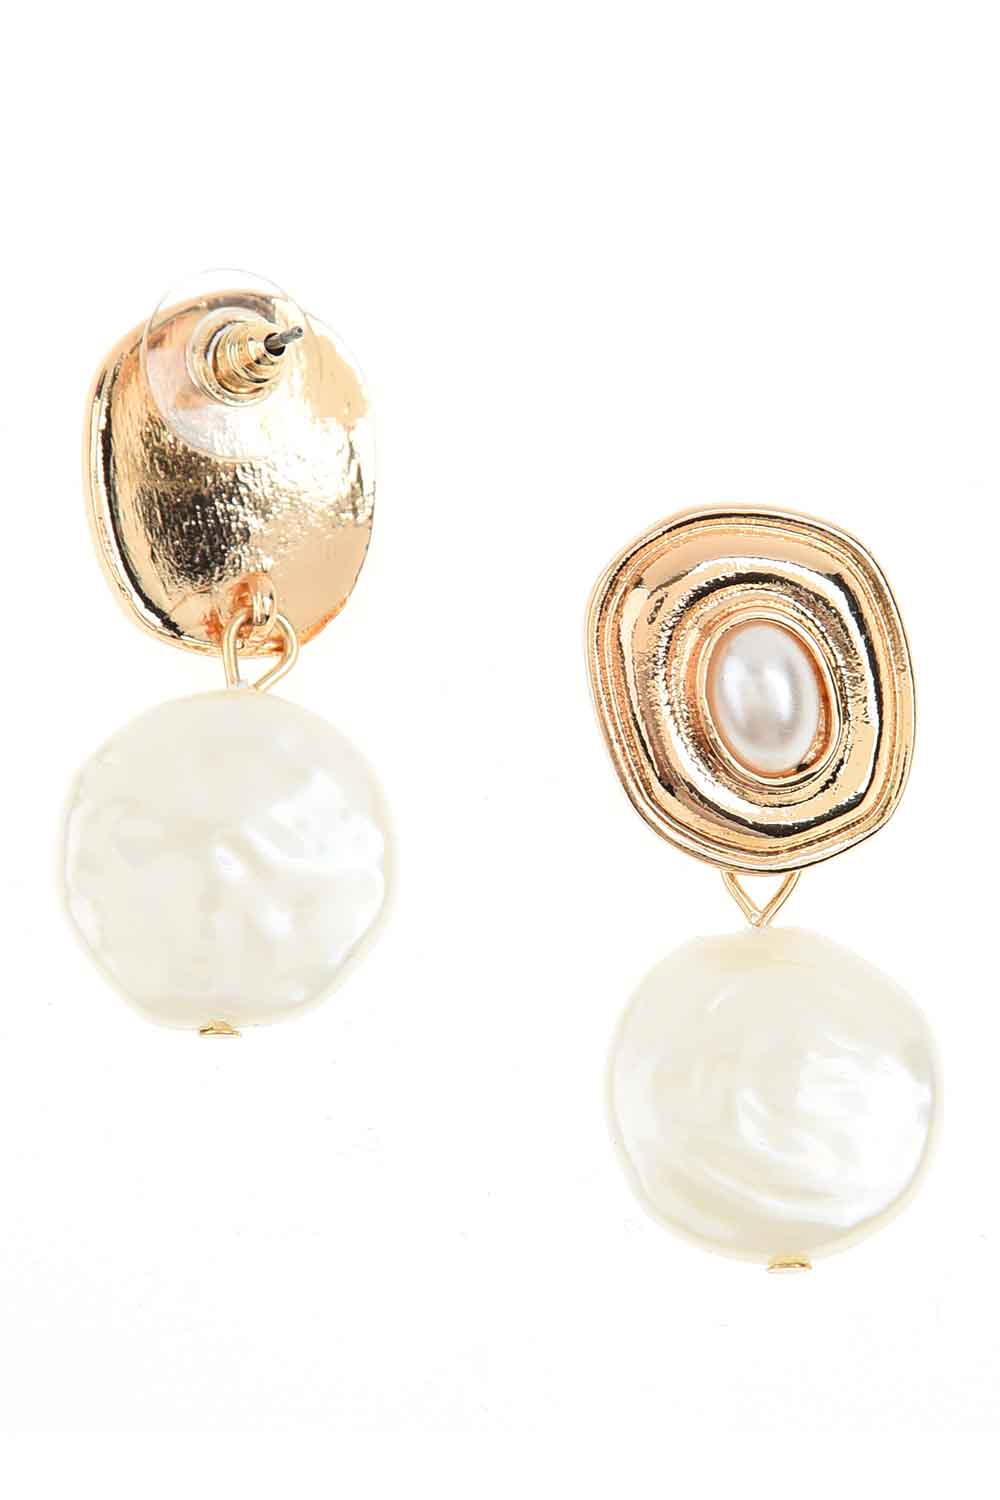 MIZALLE Pearl Dangling Earrings (St) (1)